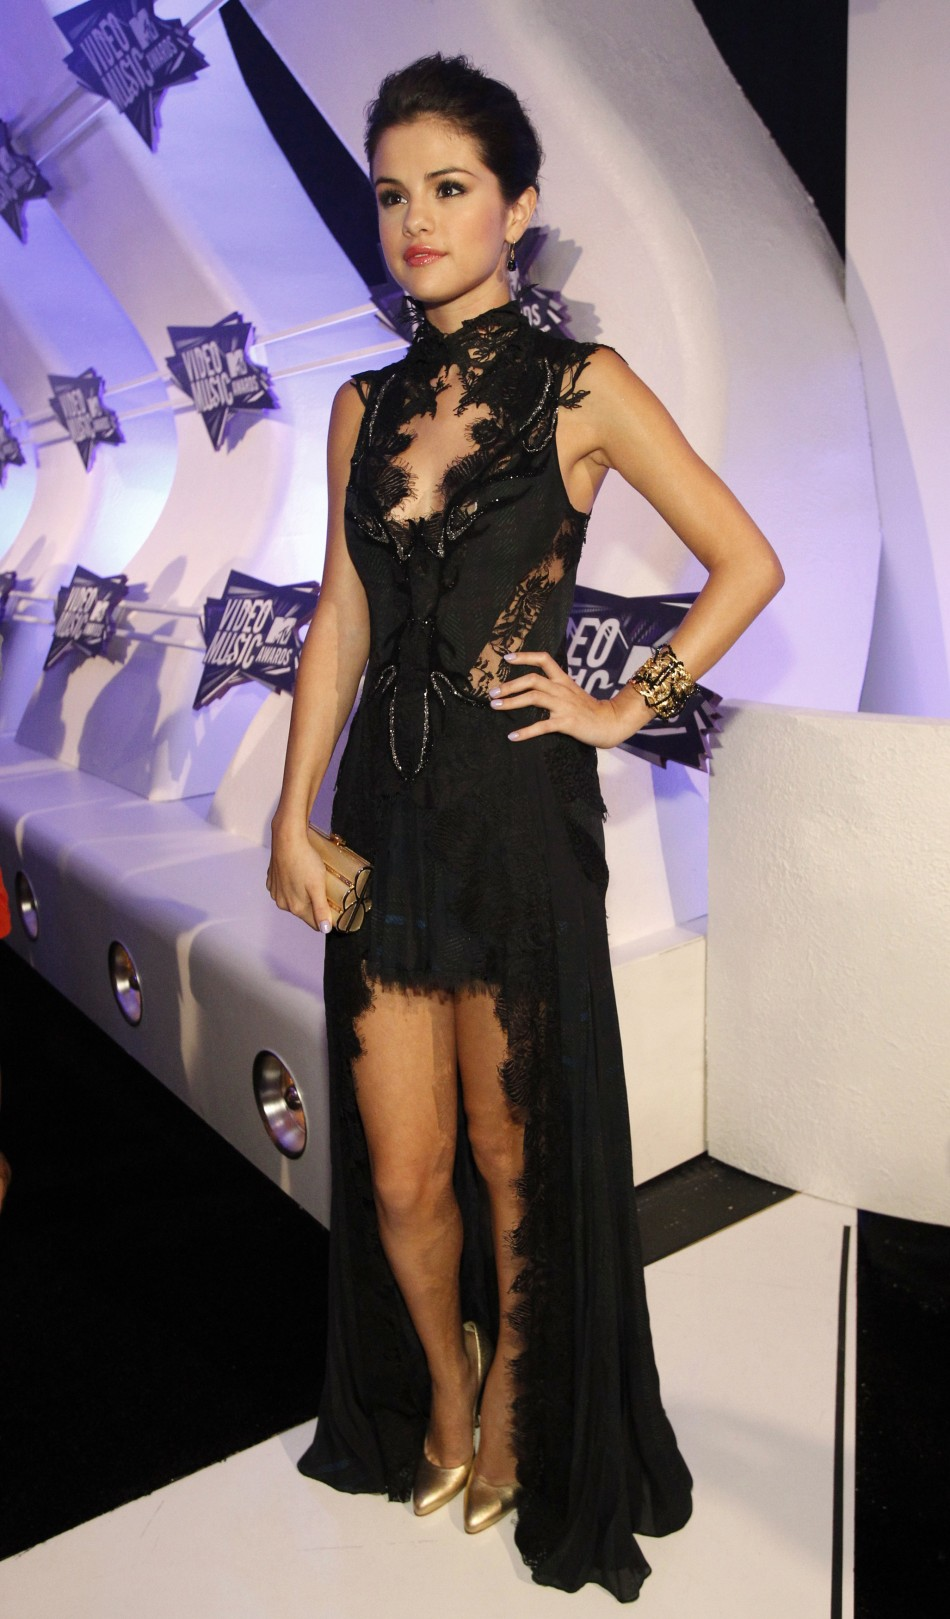 Celebs Nail the Glamour Quotient at the MTV Awards 2011